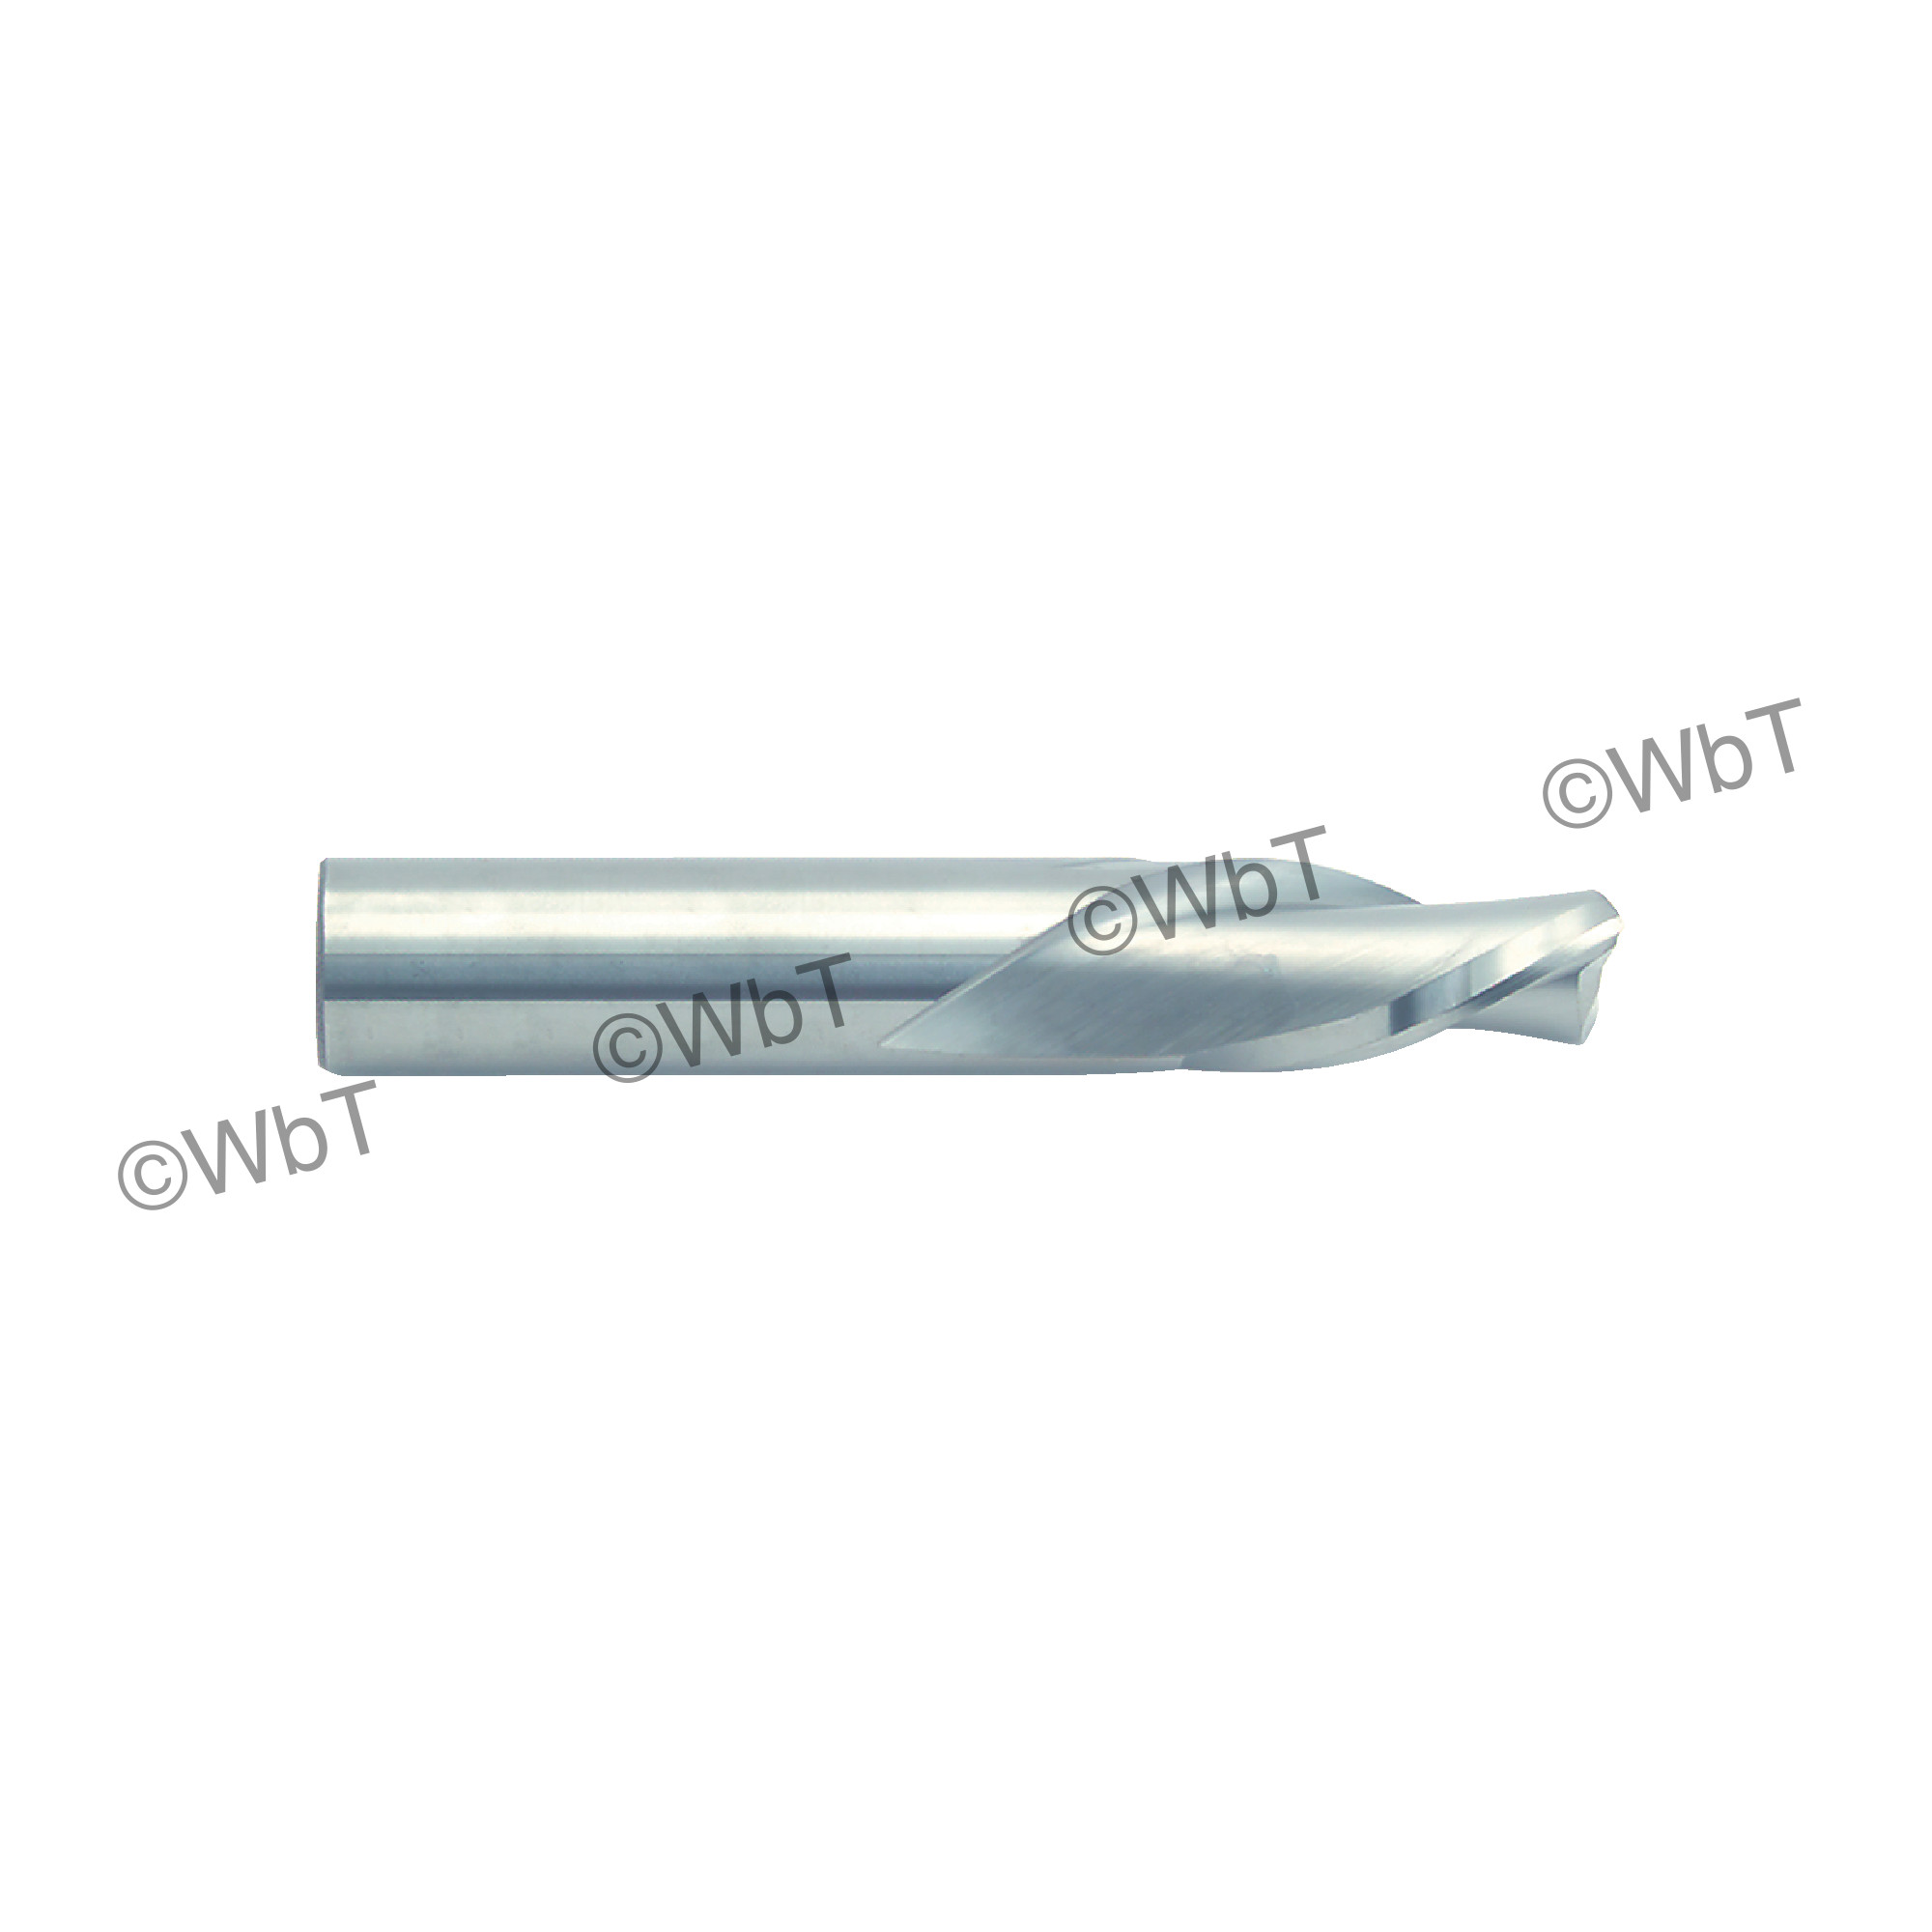 2 Flute Solid Carbide Upcut & Downcut Spiral Router